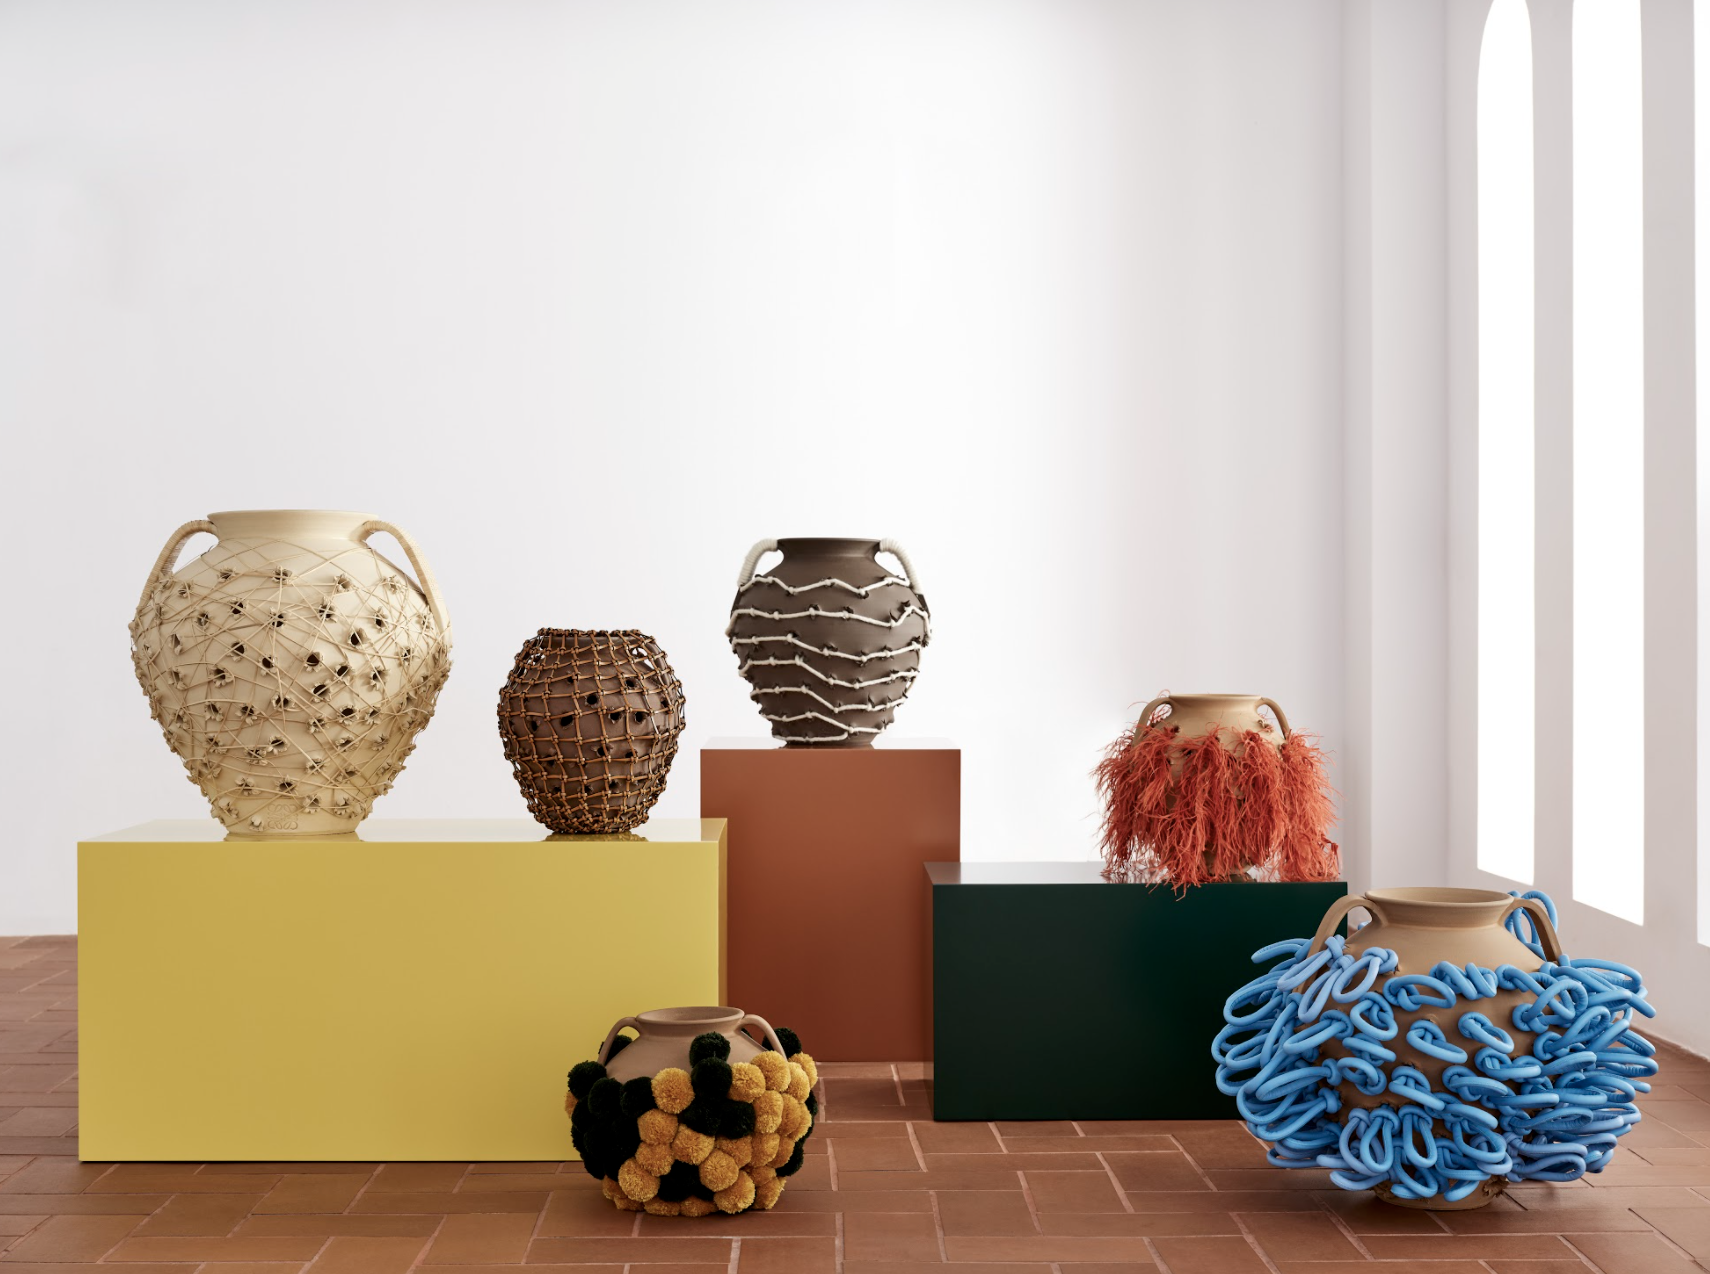 six abstract pots made from clay chestnut roasters, displayed on plinths